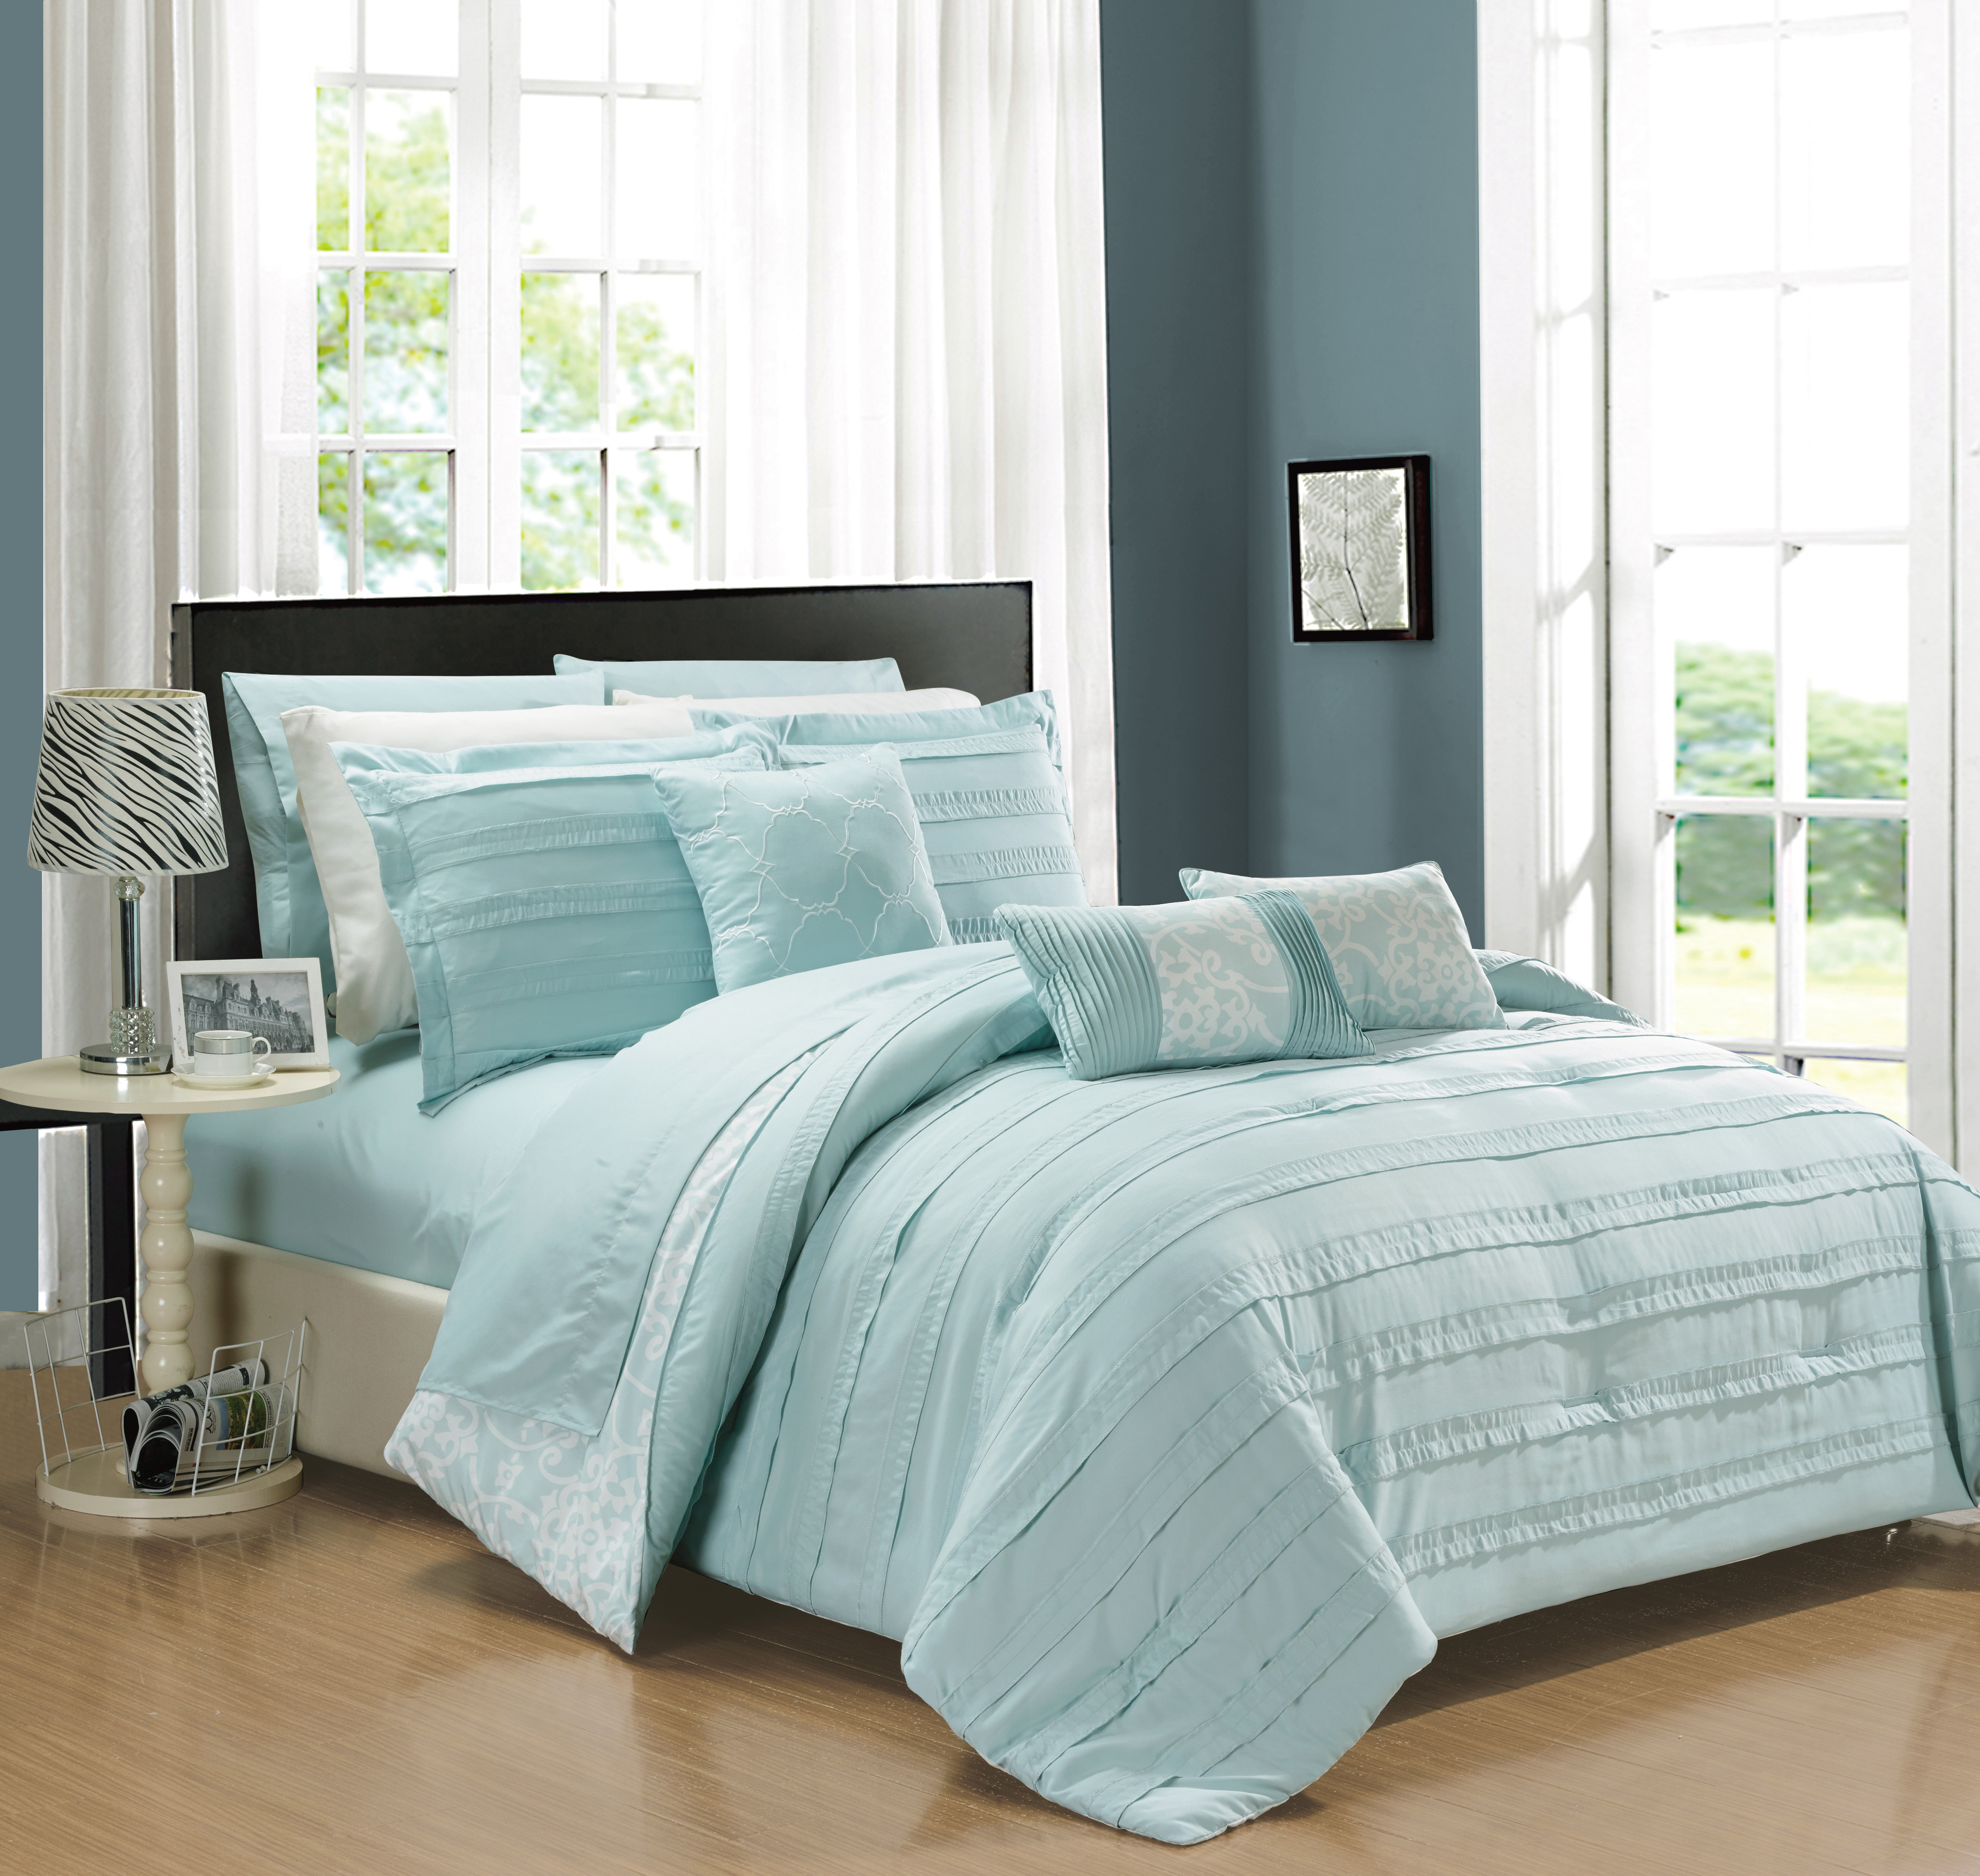 Chic Home 10-Piece Zarina Complete ruffles and Reversible Printed Queen Bed In a Bag Comforter Set Navy Sheets Included